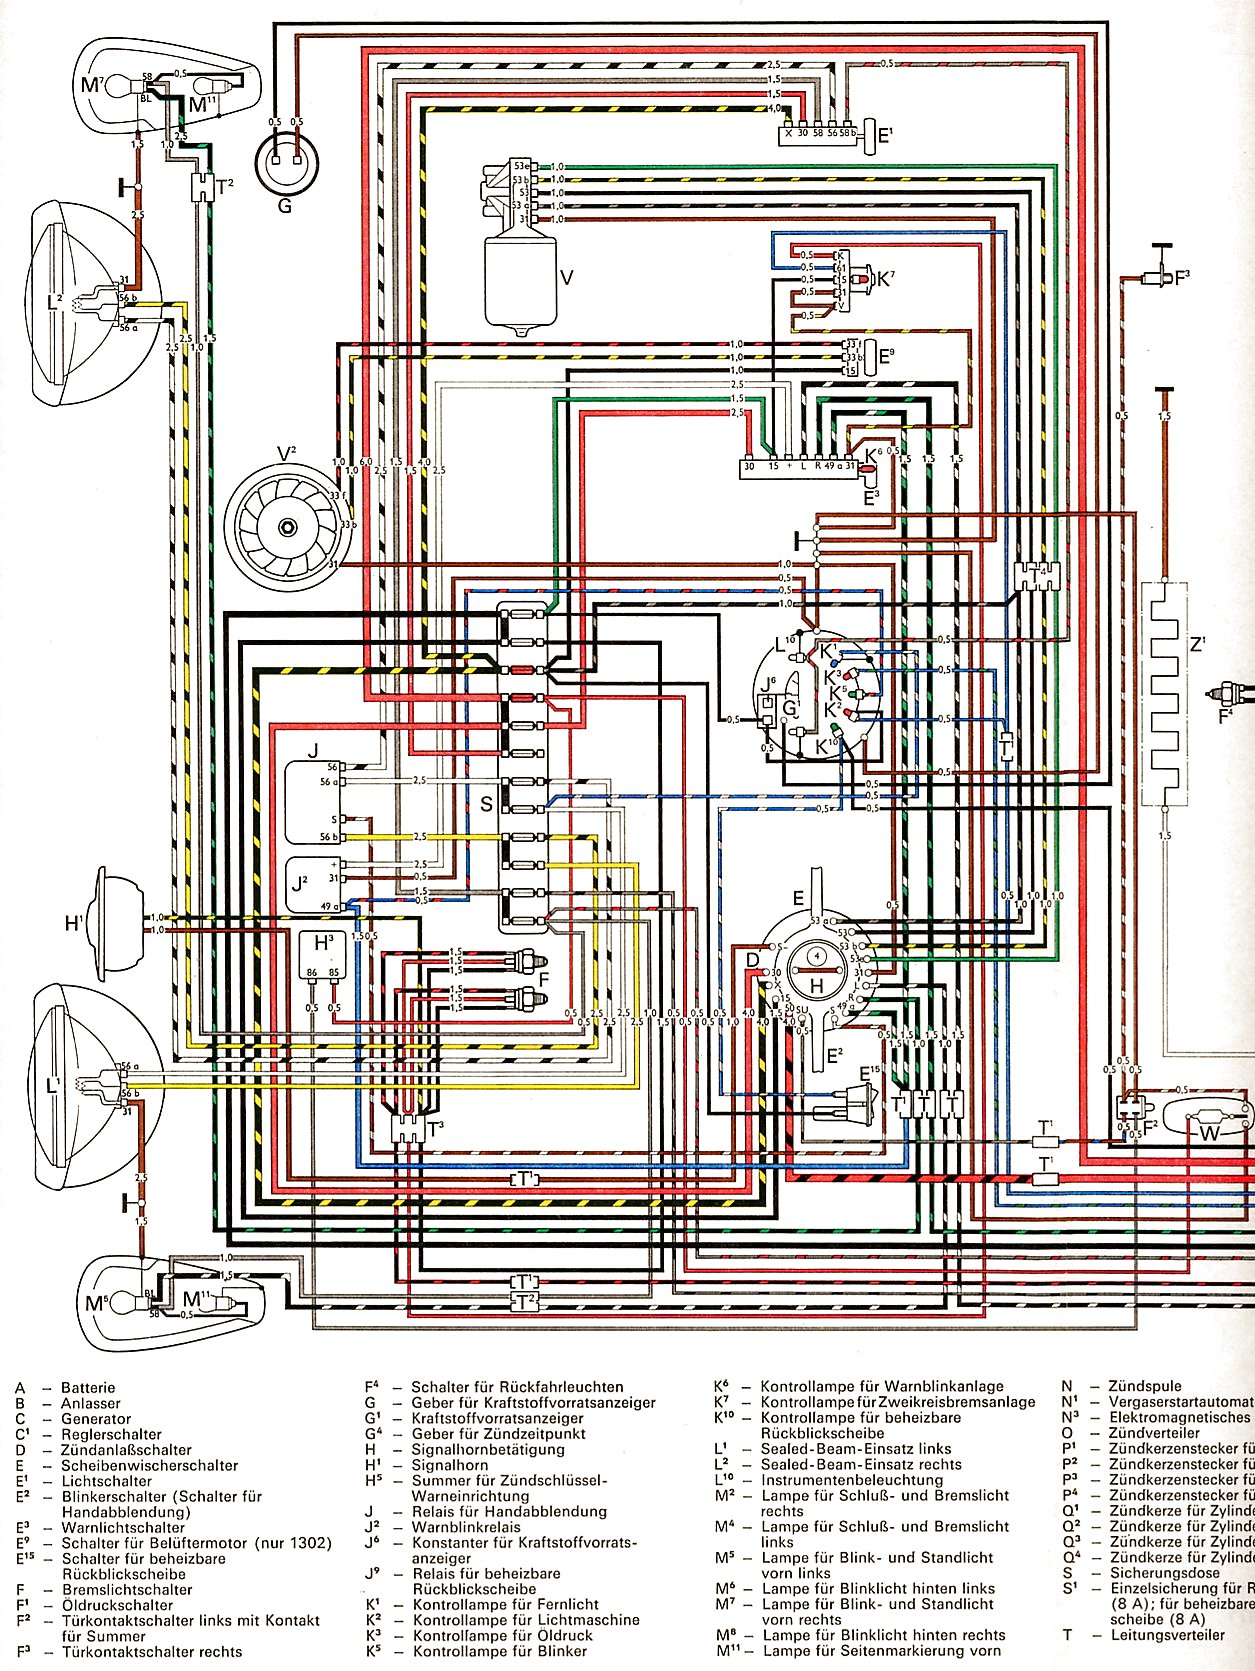 1300_and_1302_USA_from_August_1971 1 wiring diagram shoptalkforums com 1971 vw beetle wiring diagram at nearapp.co